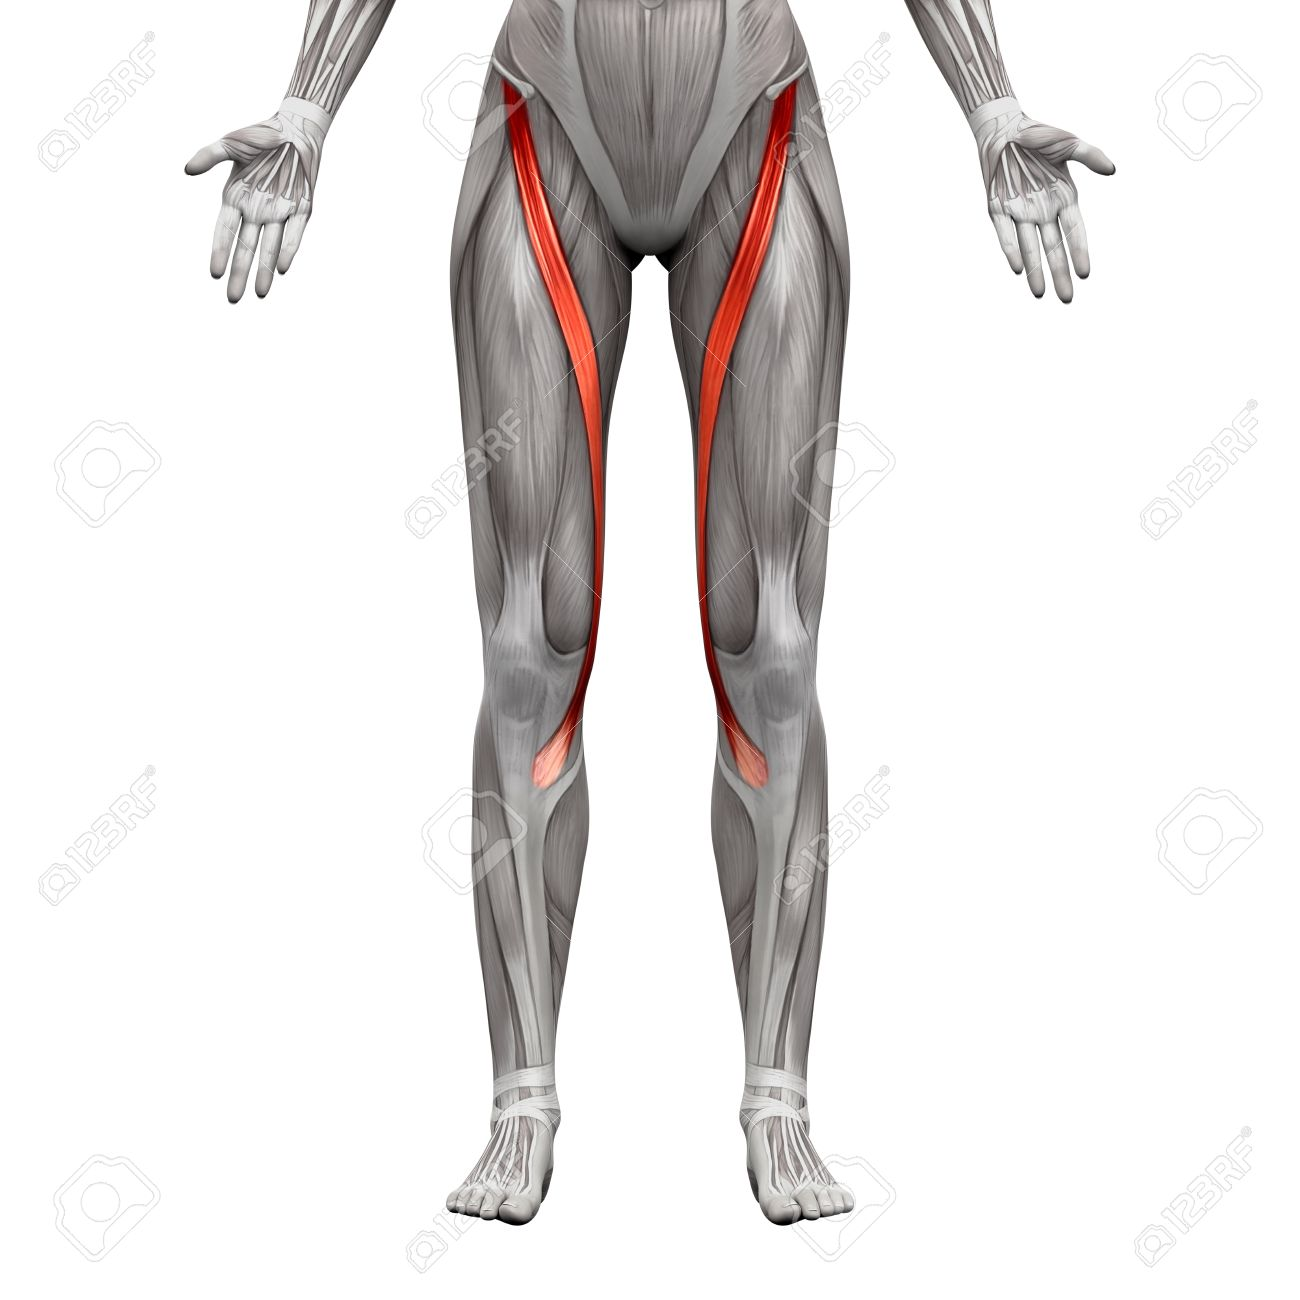 Sartorius Muscle Anatomy Muscles Isolated On White 3d